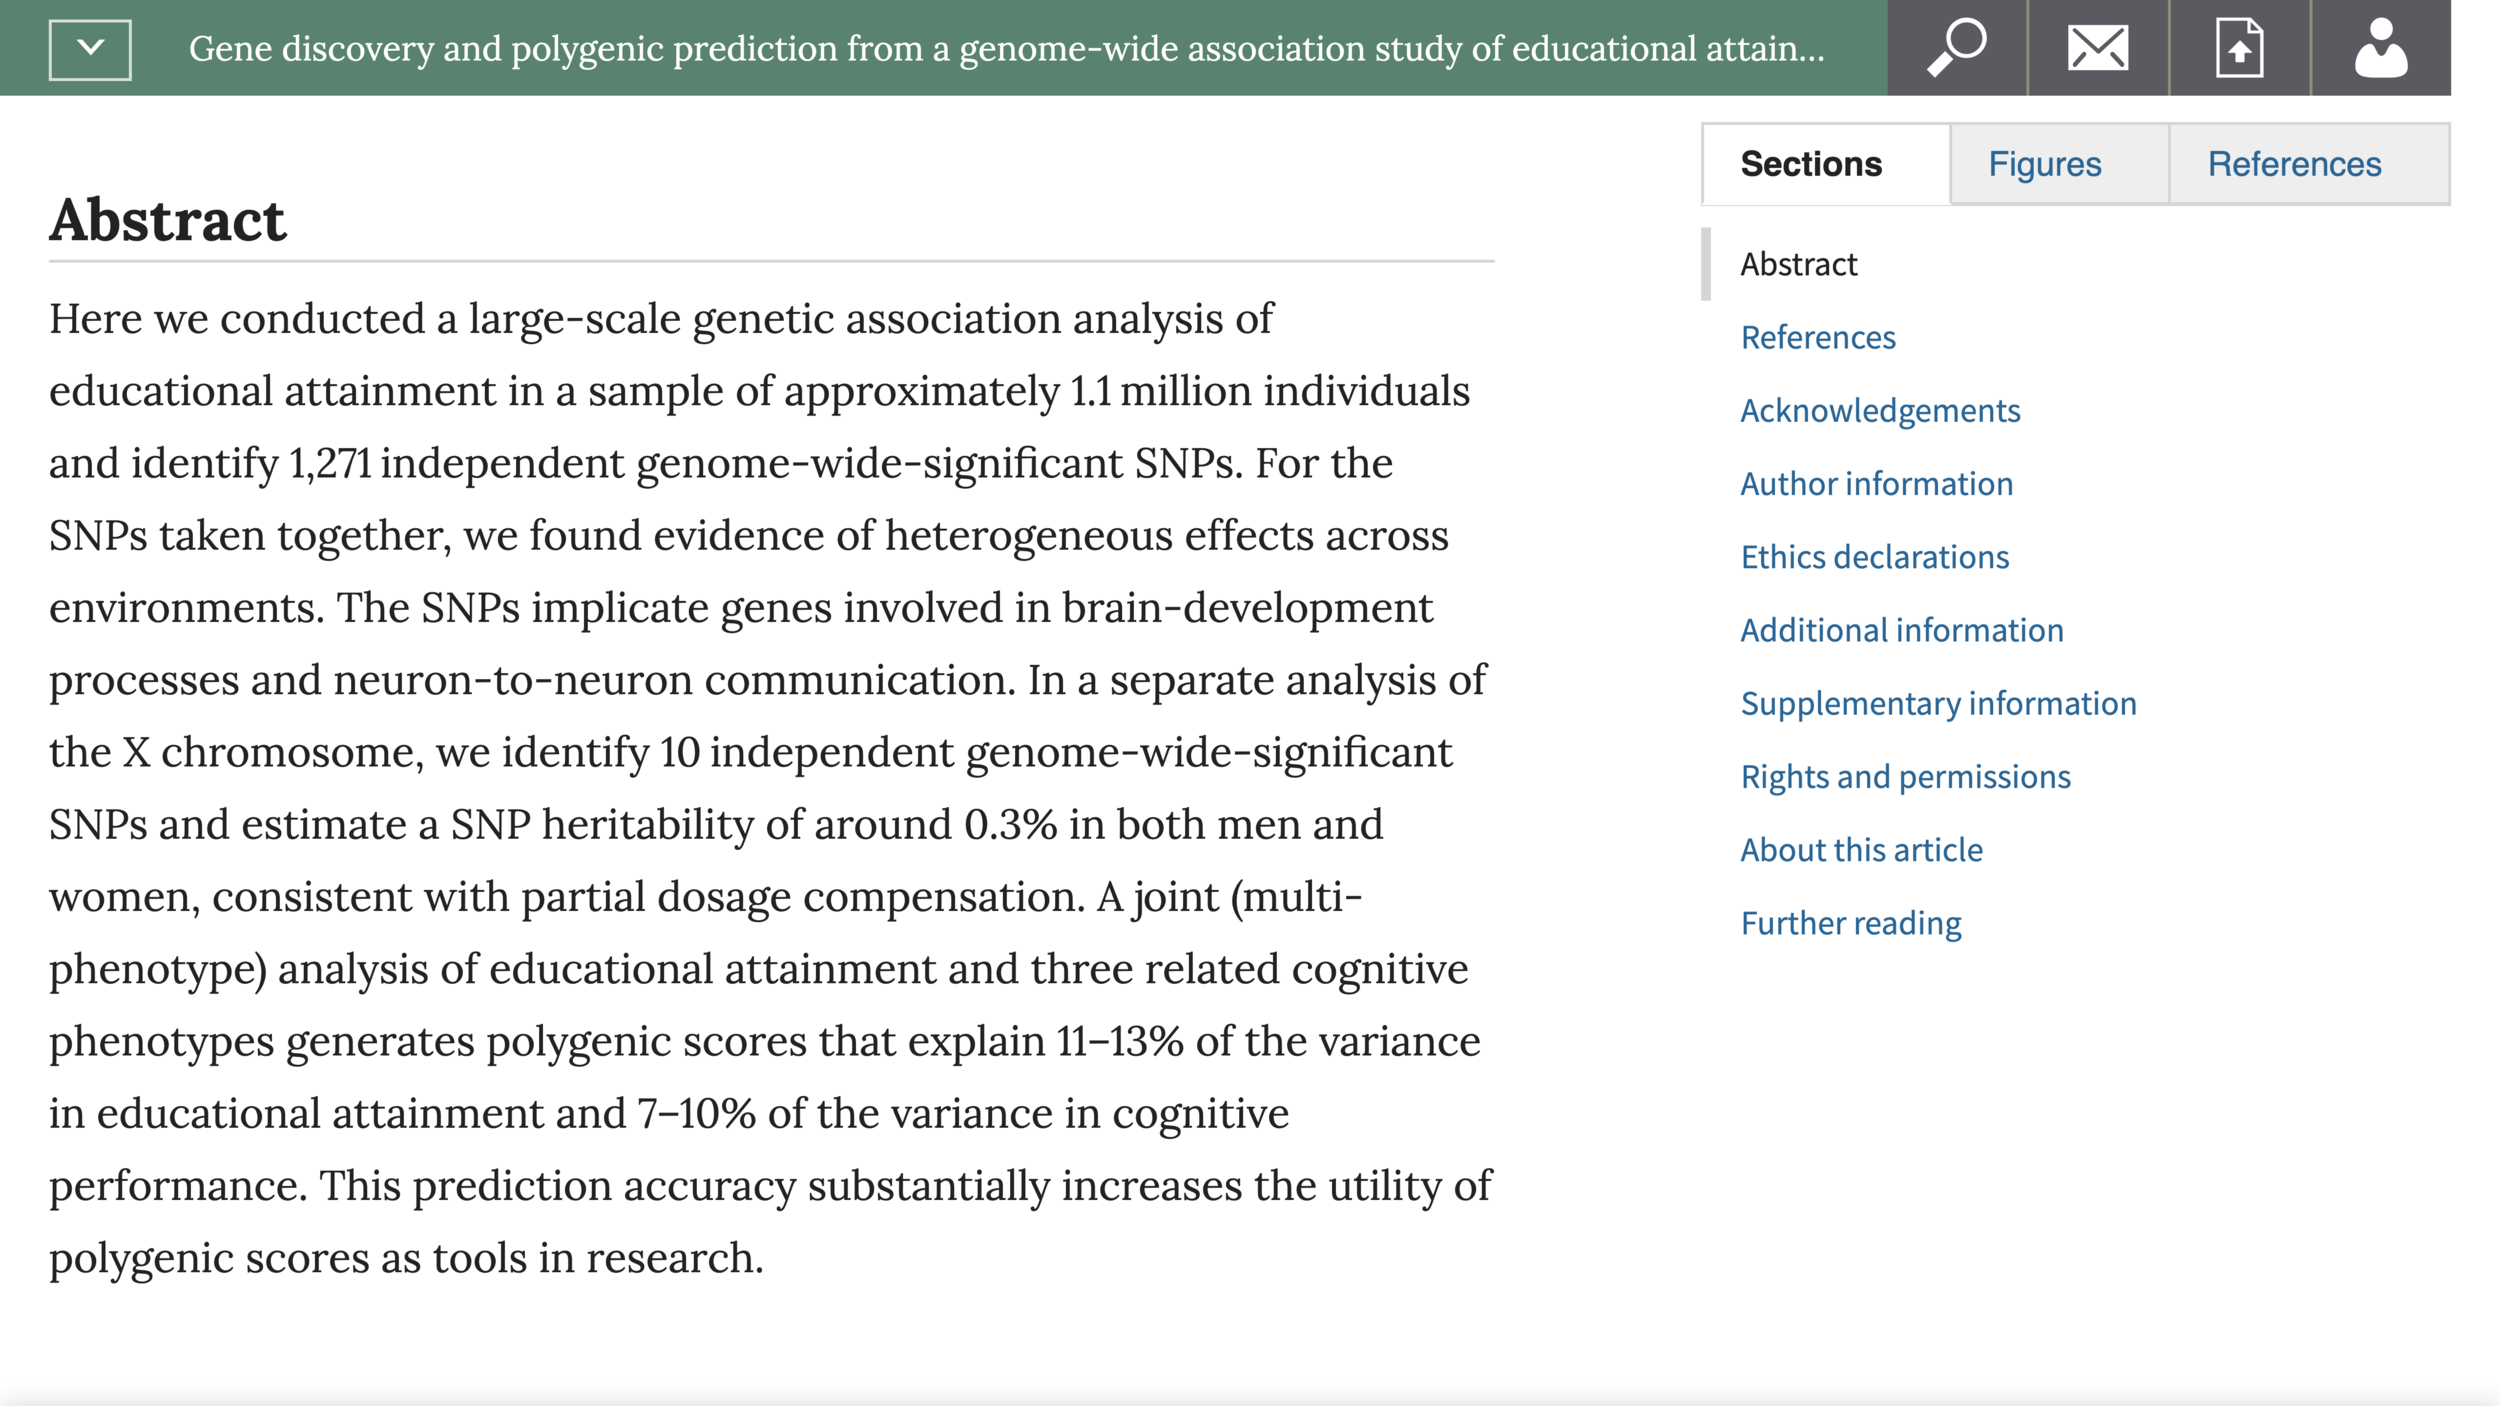 Link to the abstract shown above